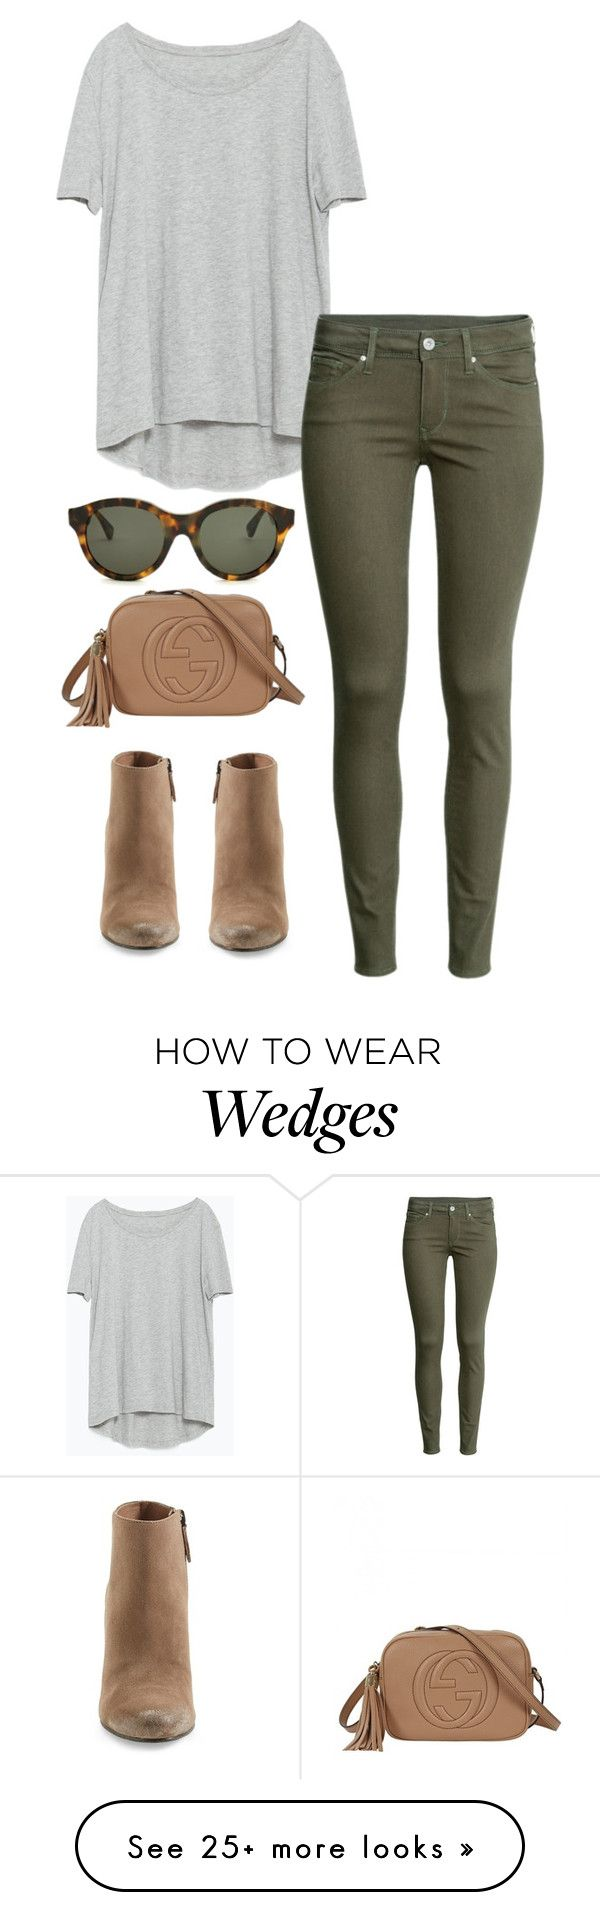 """army green jeans"" by kcunningham1 on Polyvore featuring Zara, H&M, Dolce Vita, Gucci and RetroSuperFuture"